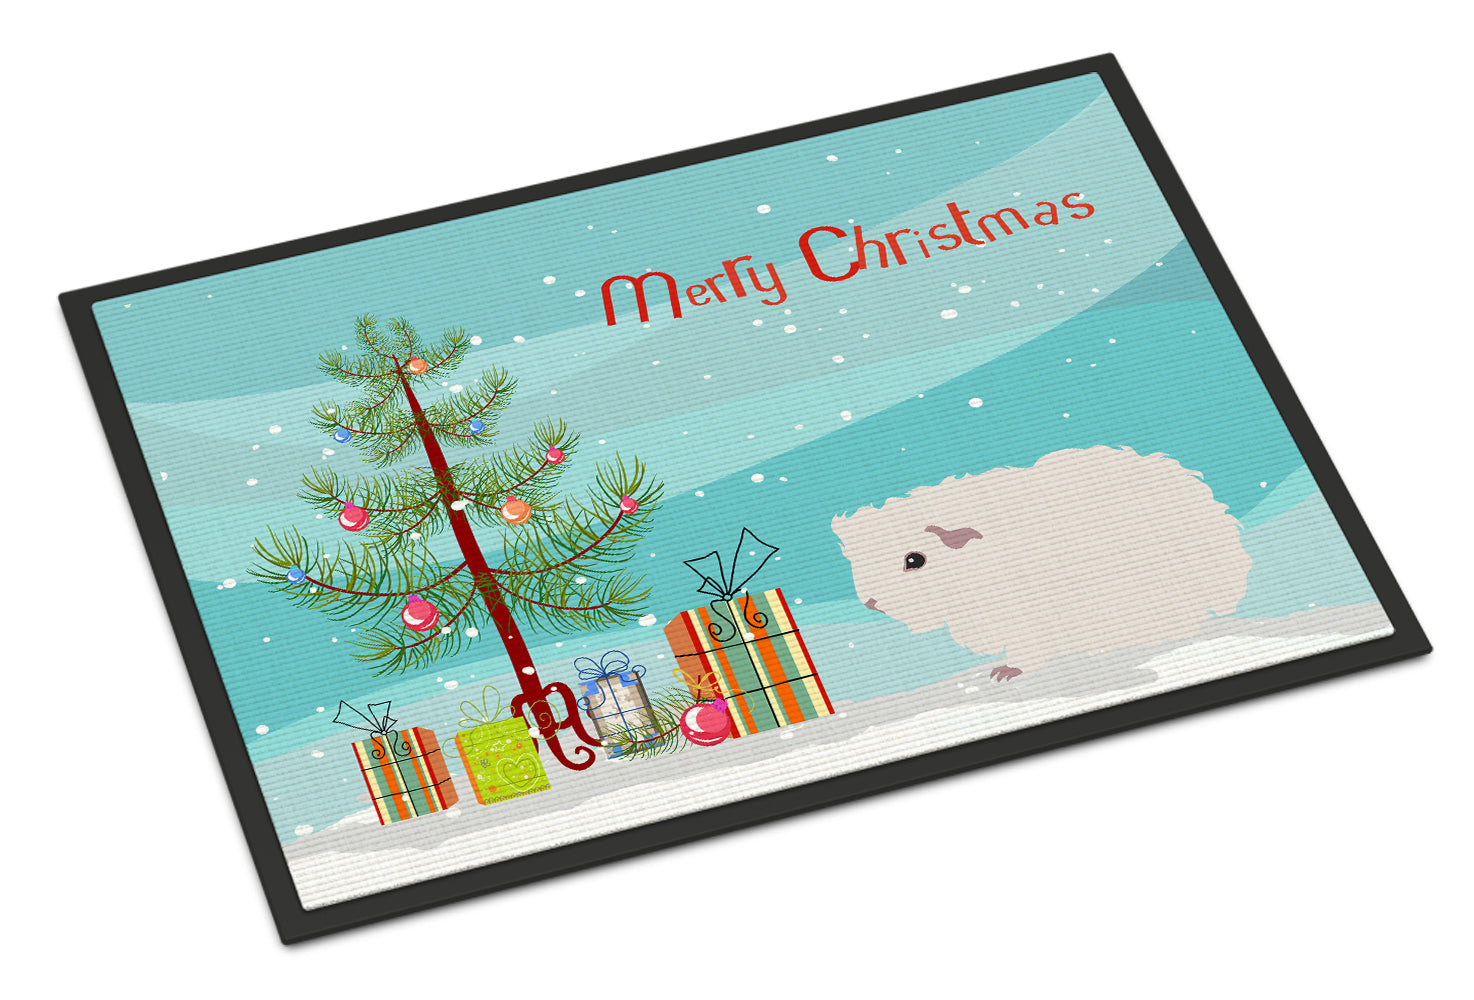 Merino Guinea Pig Merry Christmas Indoor or Outdoor Mat 18x27 CK4442MAT by Caroline's Treasures